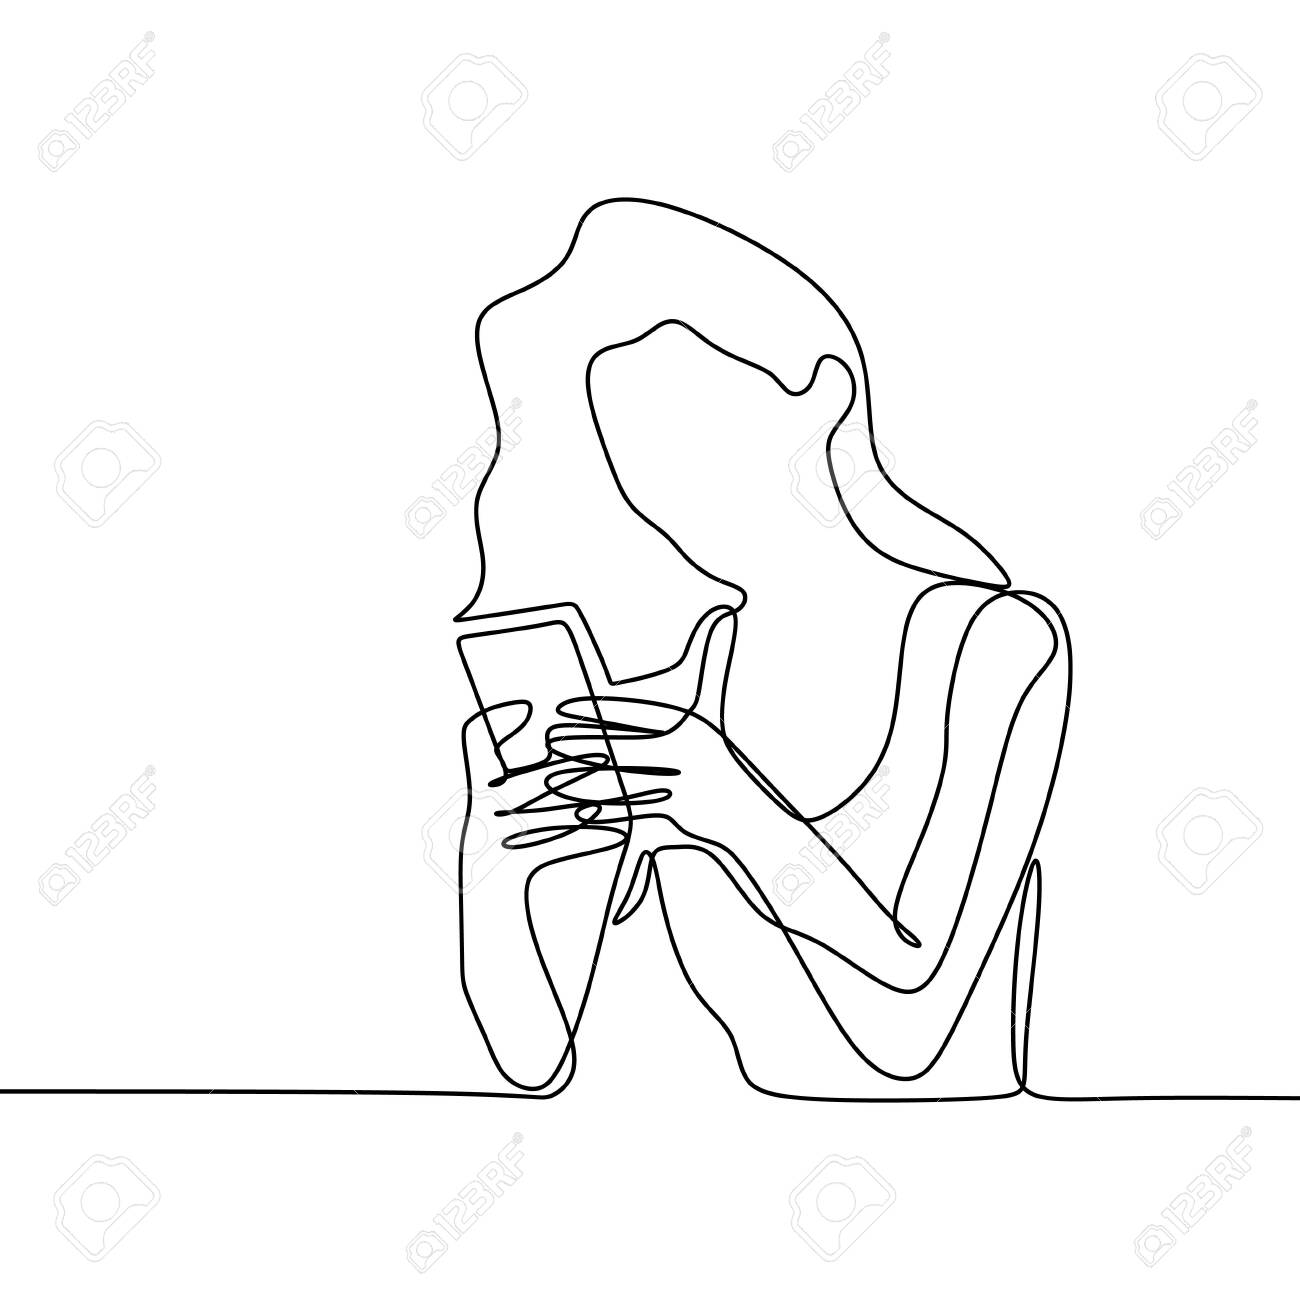 Girl playing and using smart phone continuous line drawing. One lineart of women communication concept vector with mobile gadget technology minimalism design illustration. - 144287288